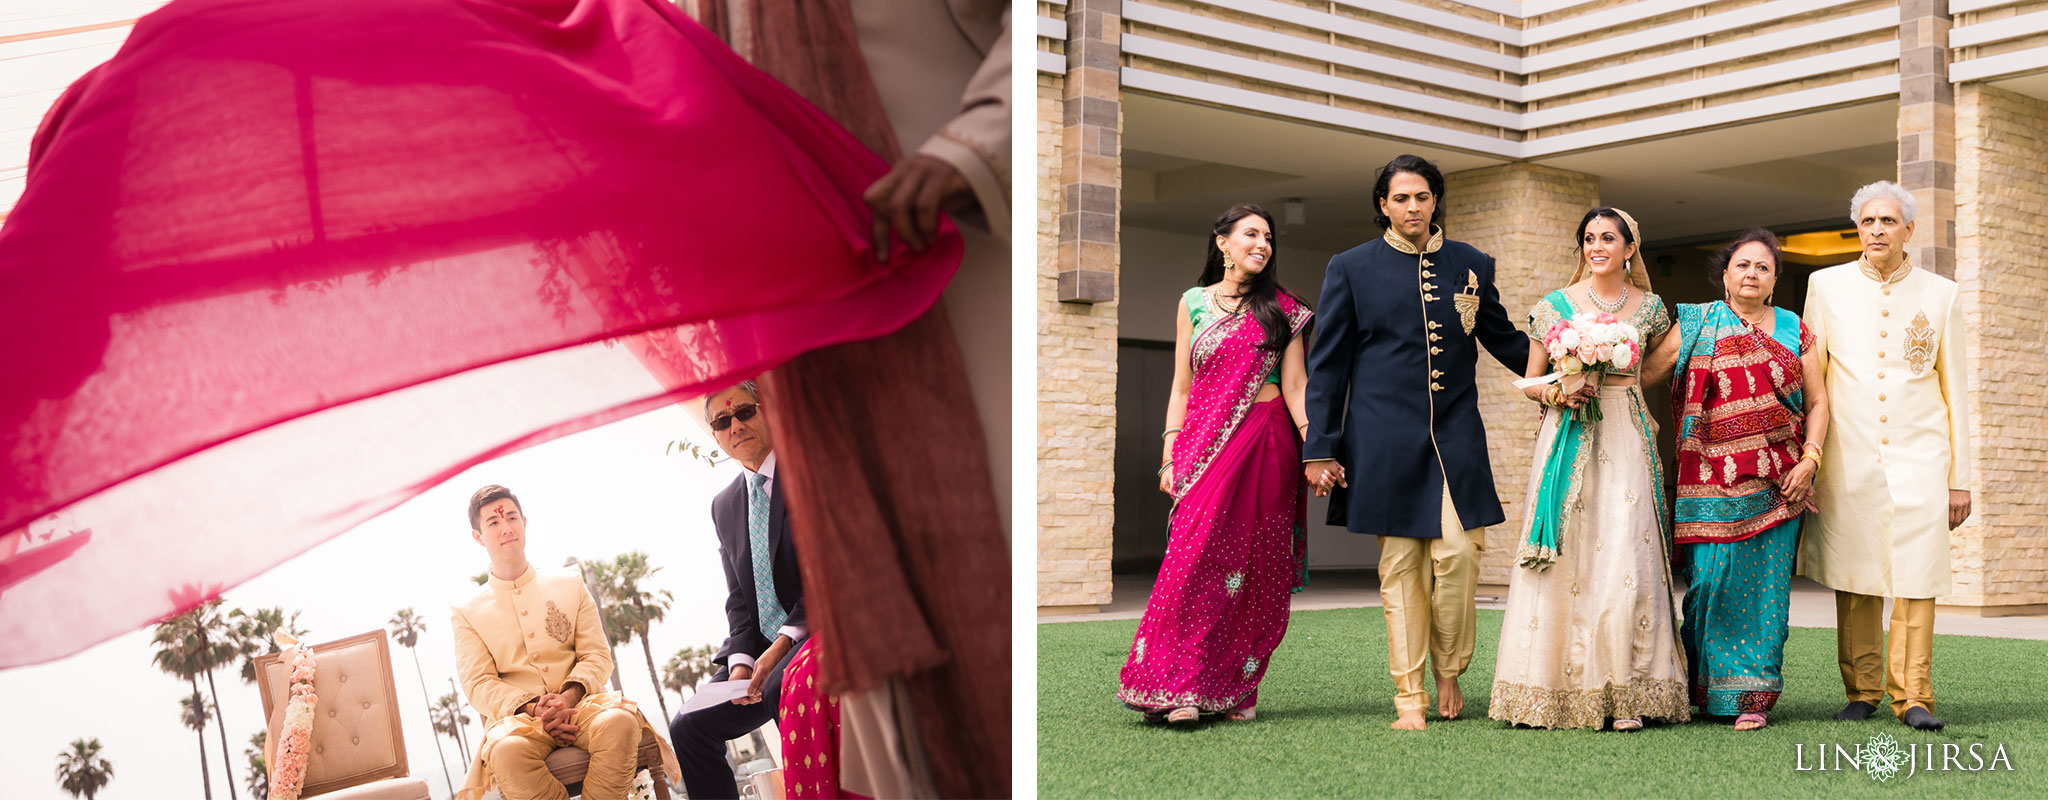 26 pasea hotel and spa huntington beach indian wedding ceremony photography